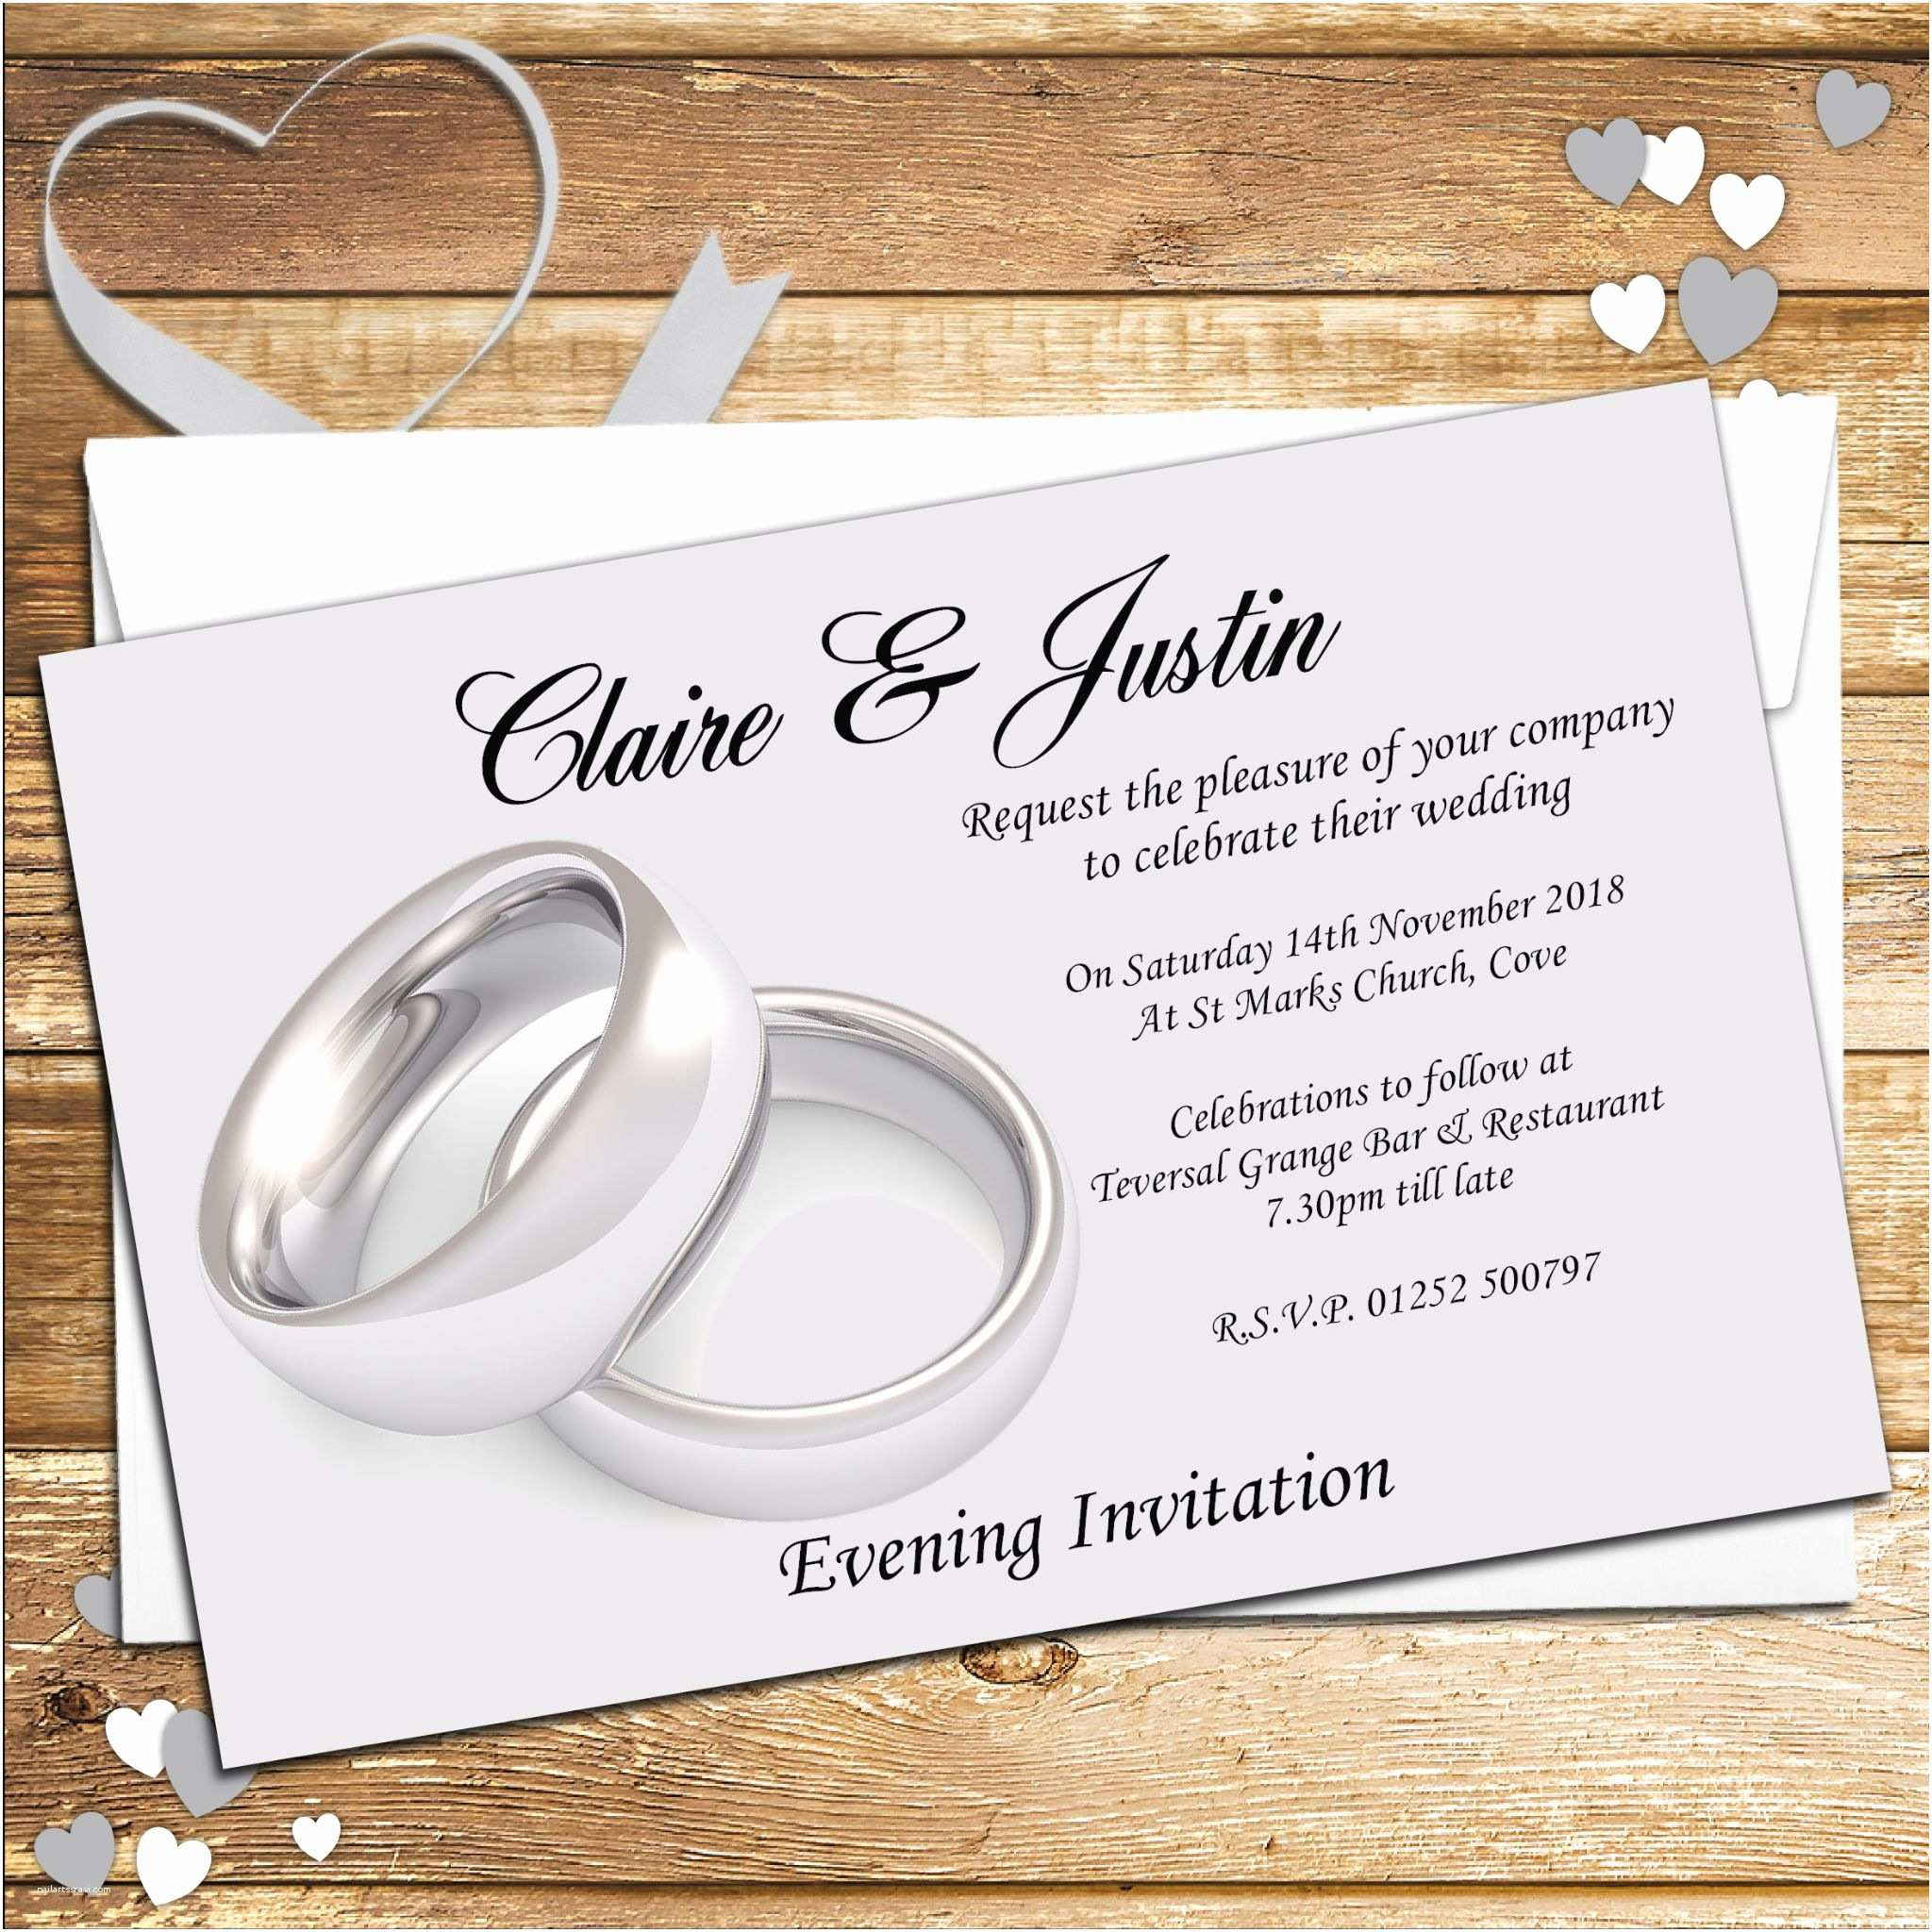 Ring In the New Year Wedding Invite 10 Personalised Wedding Silver Rings Invitations Day